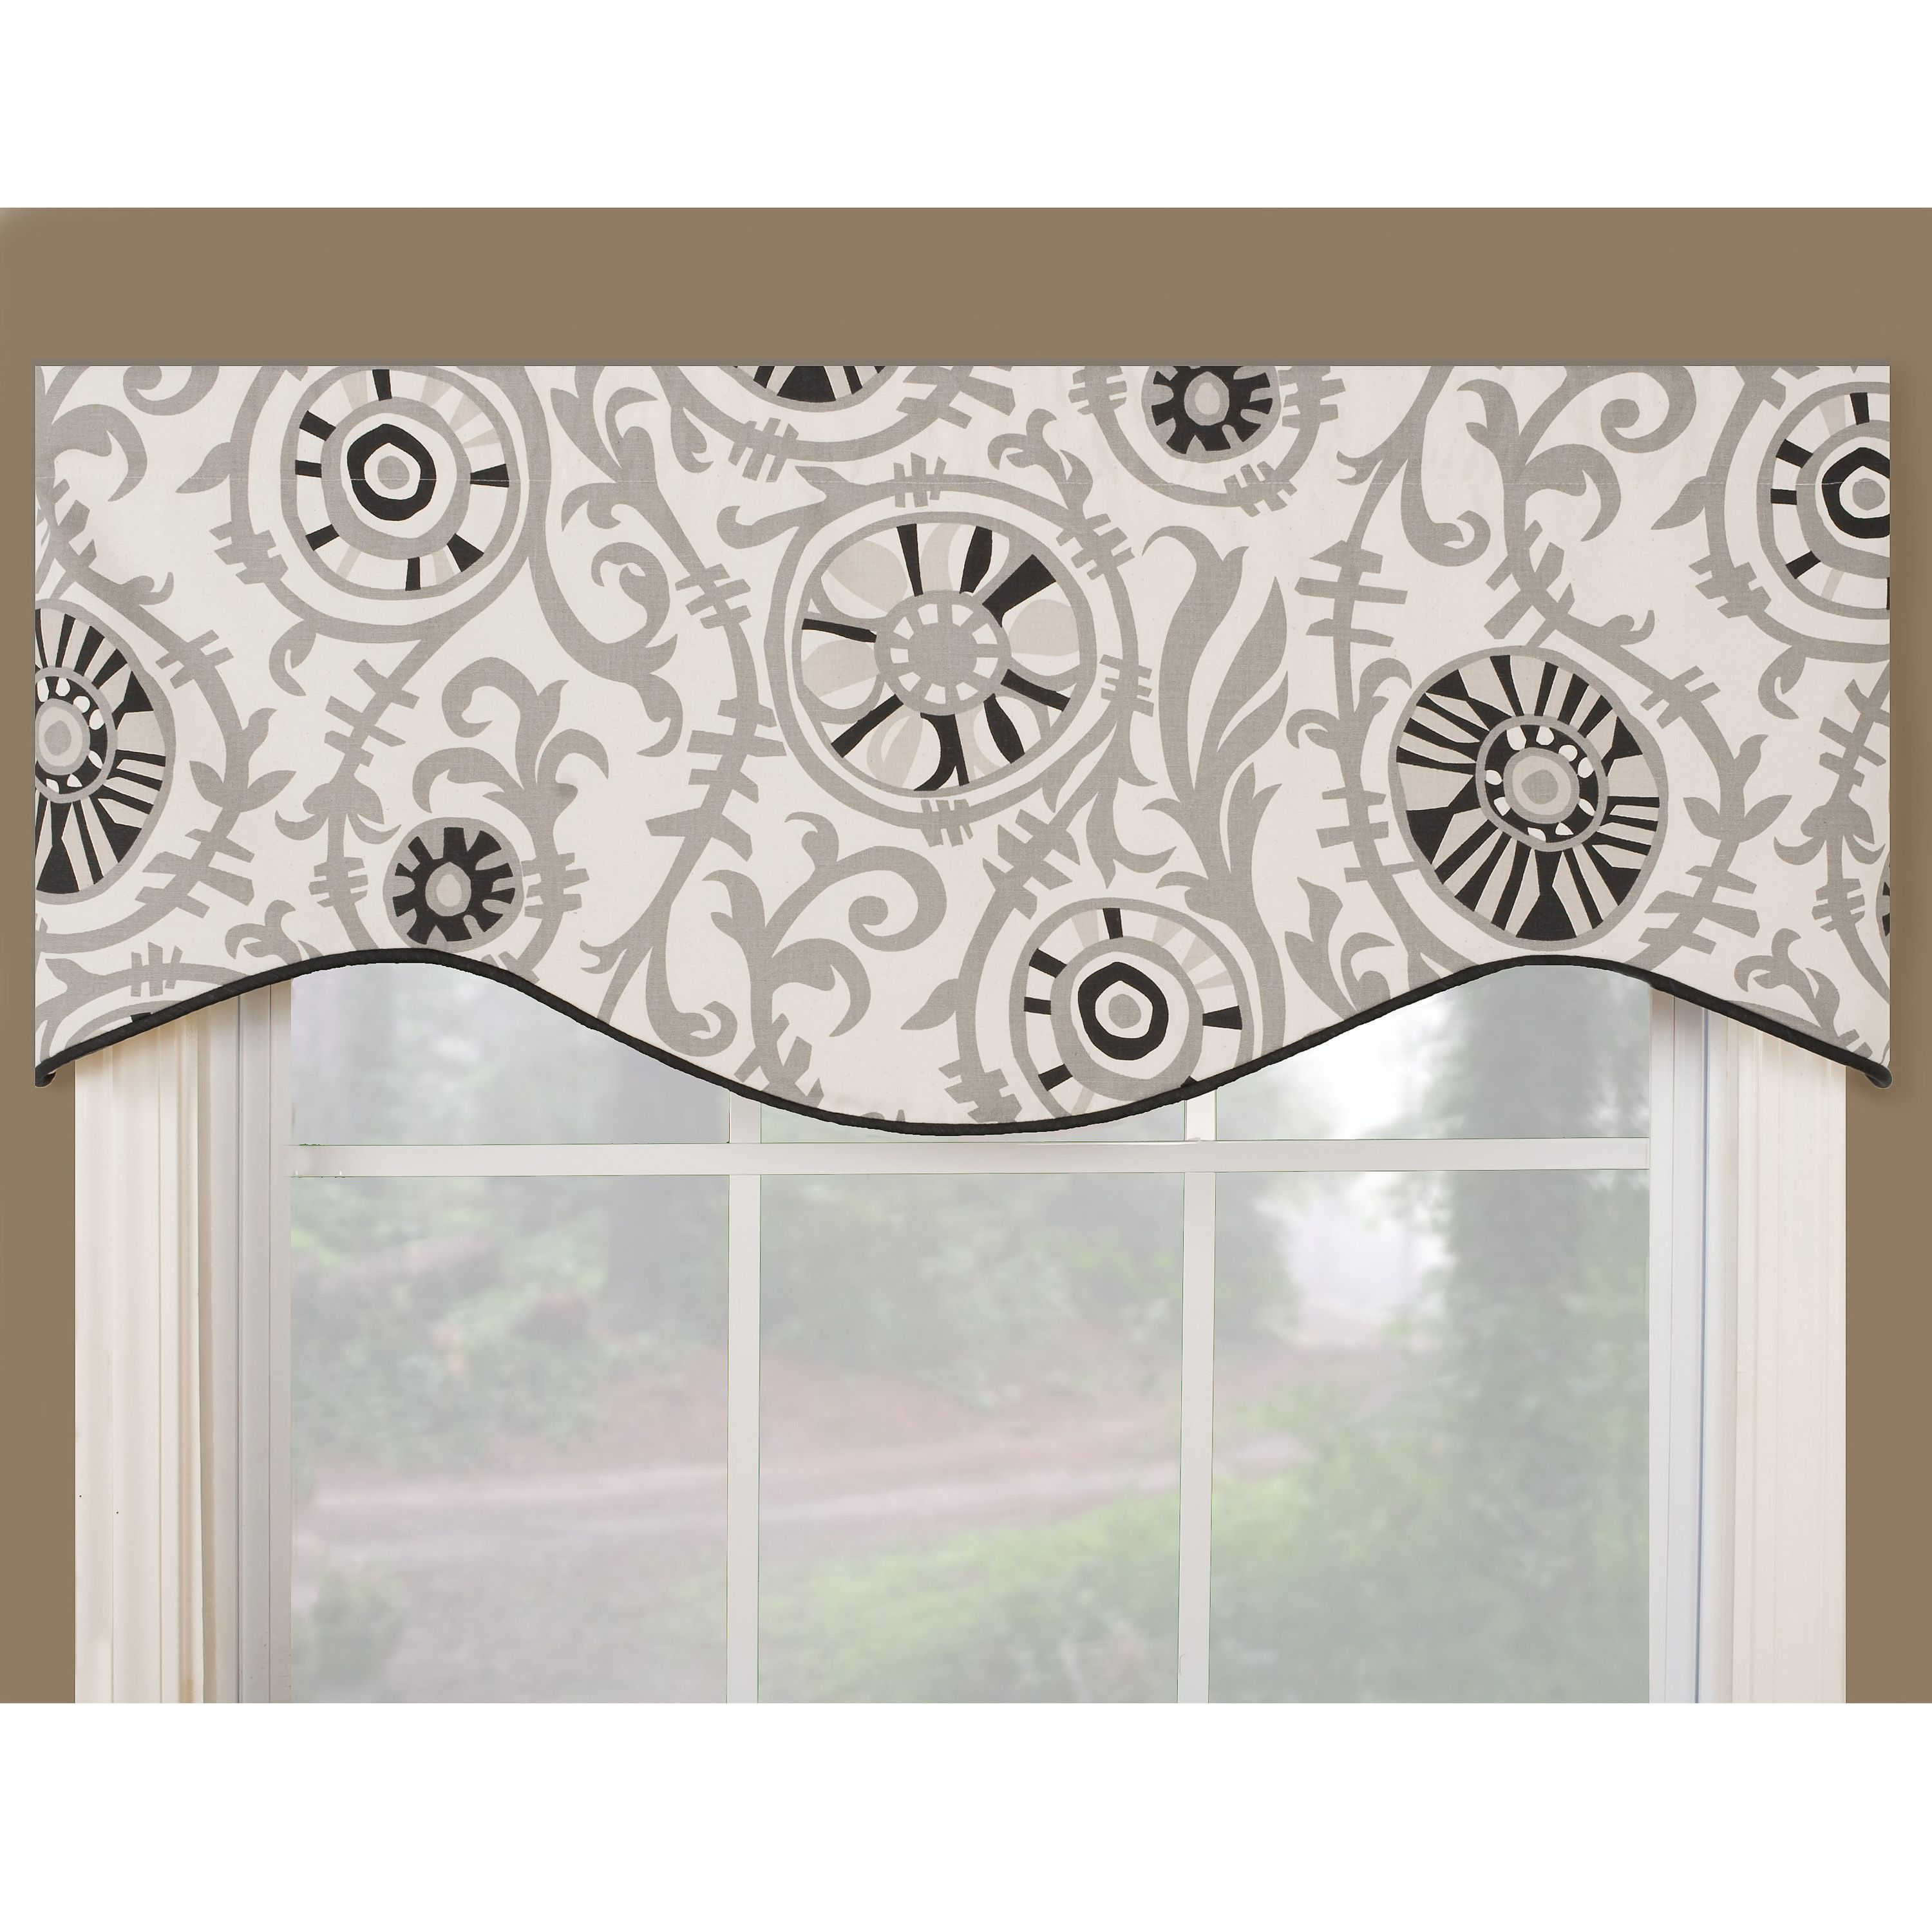 This classic valance works to define window